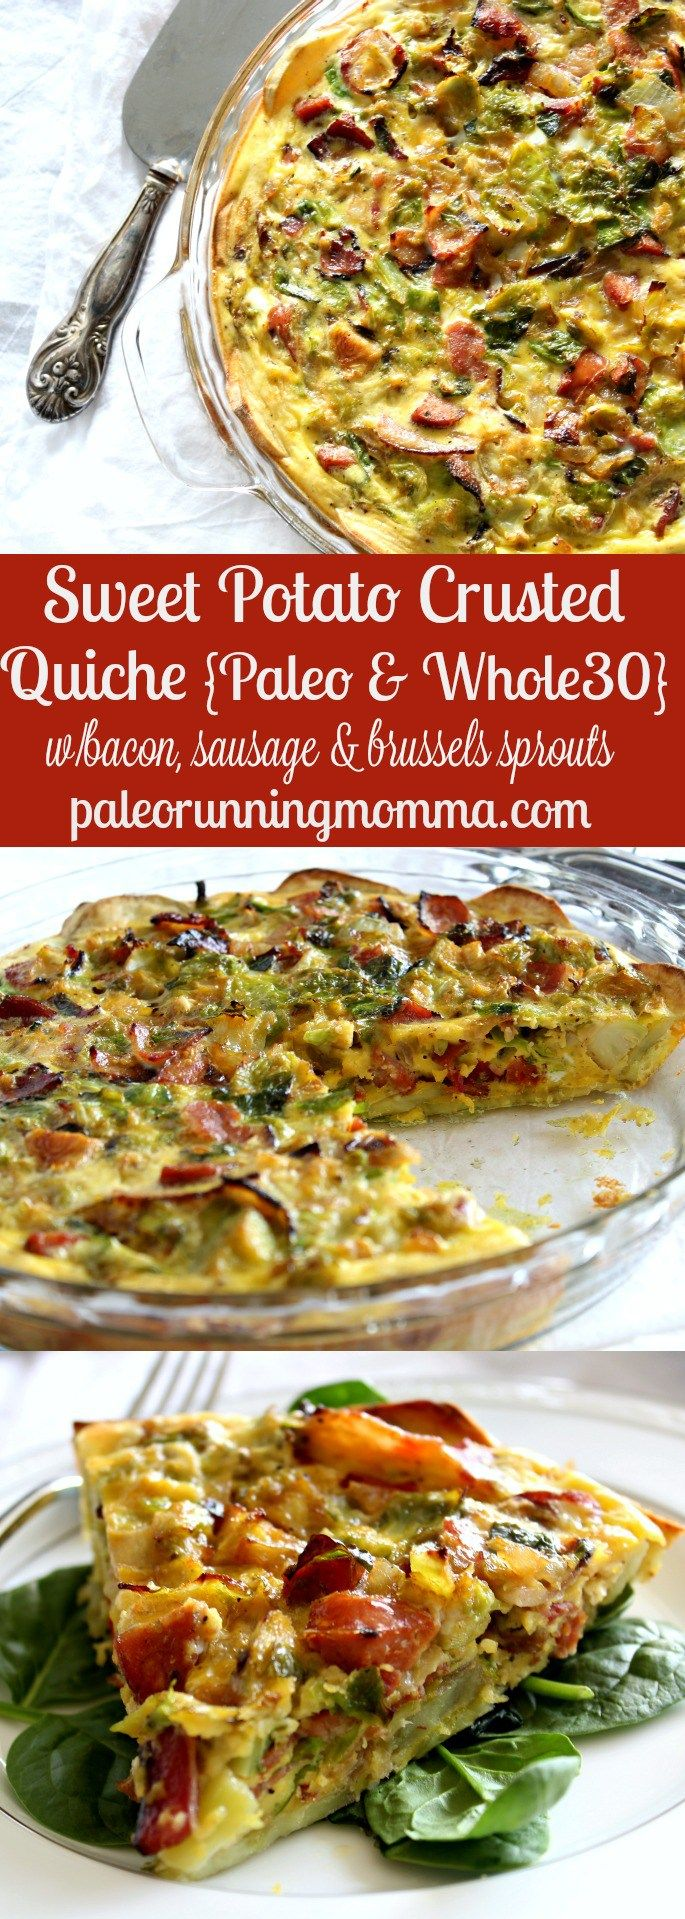 Sweet Potato Crusted Quiche - paleo & Whole30 - with bacon, sausage, and brussels sprouts